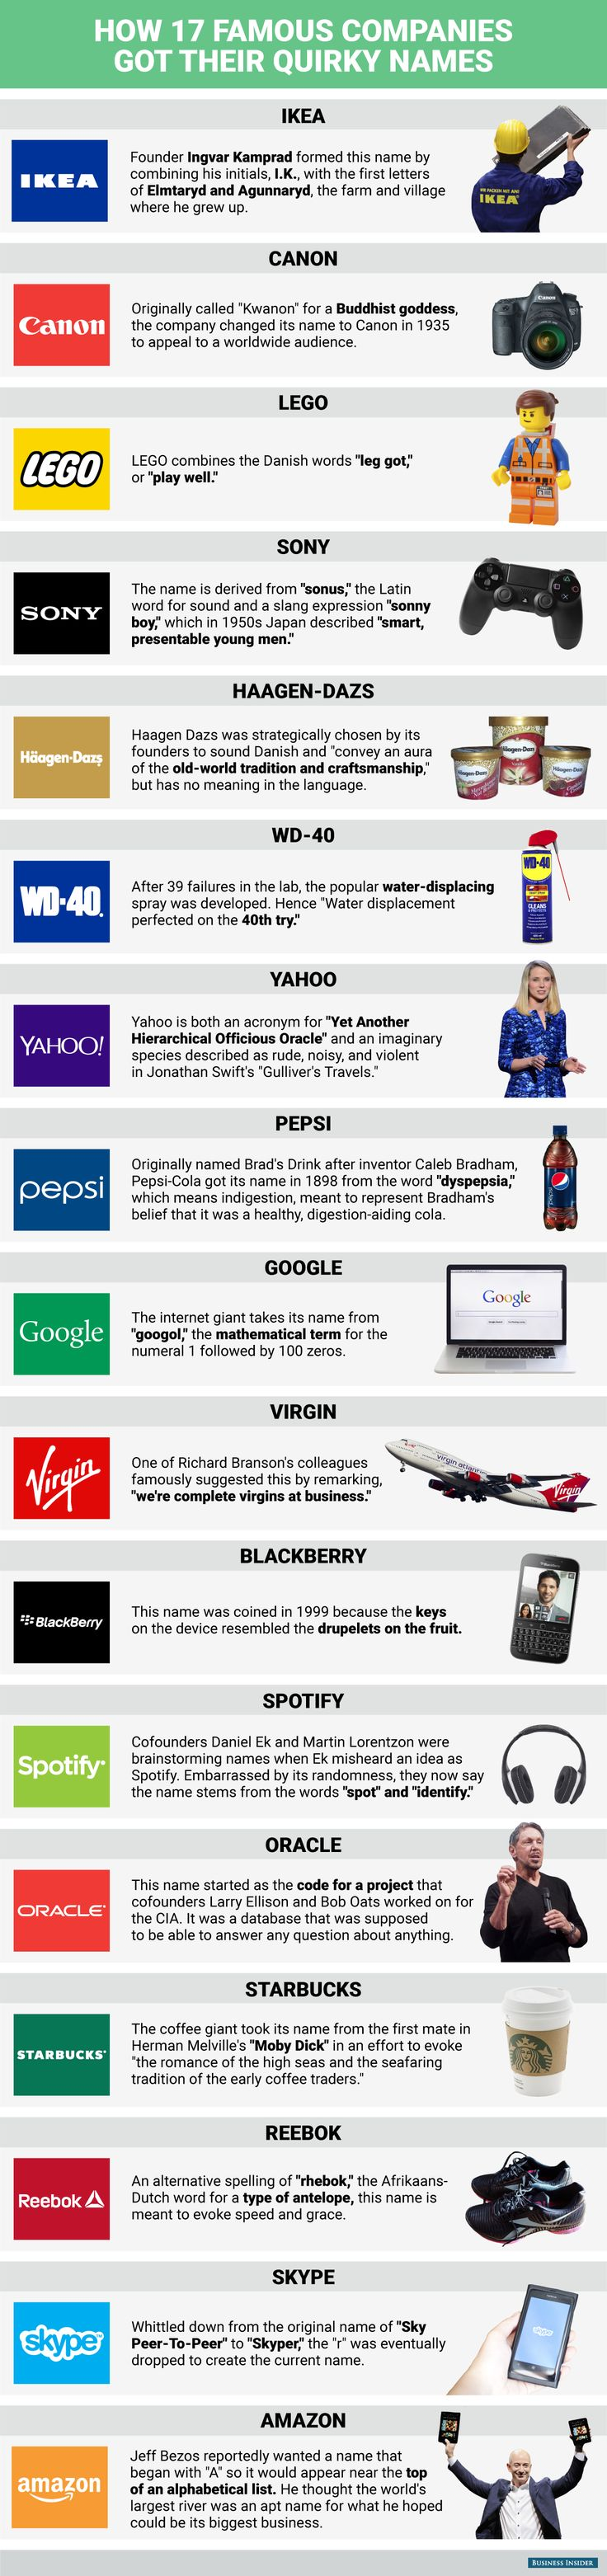 How 17 Famous Companies Got Their Quirky Names #infographic #Business